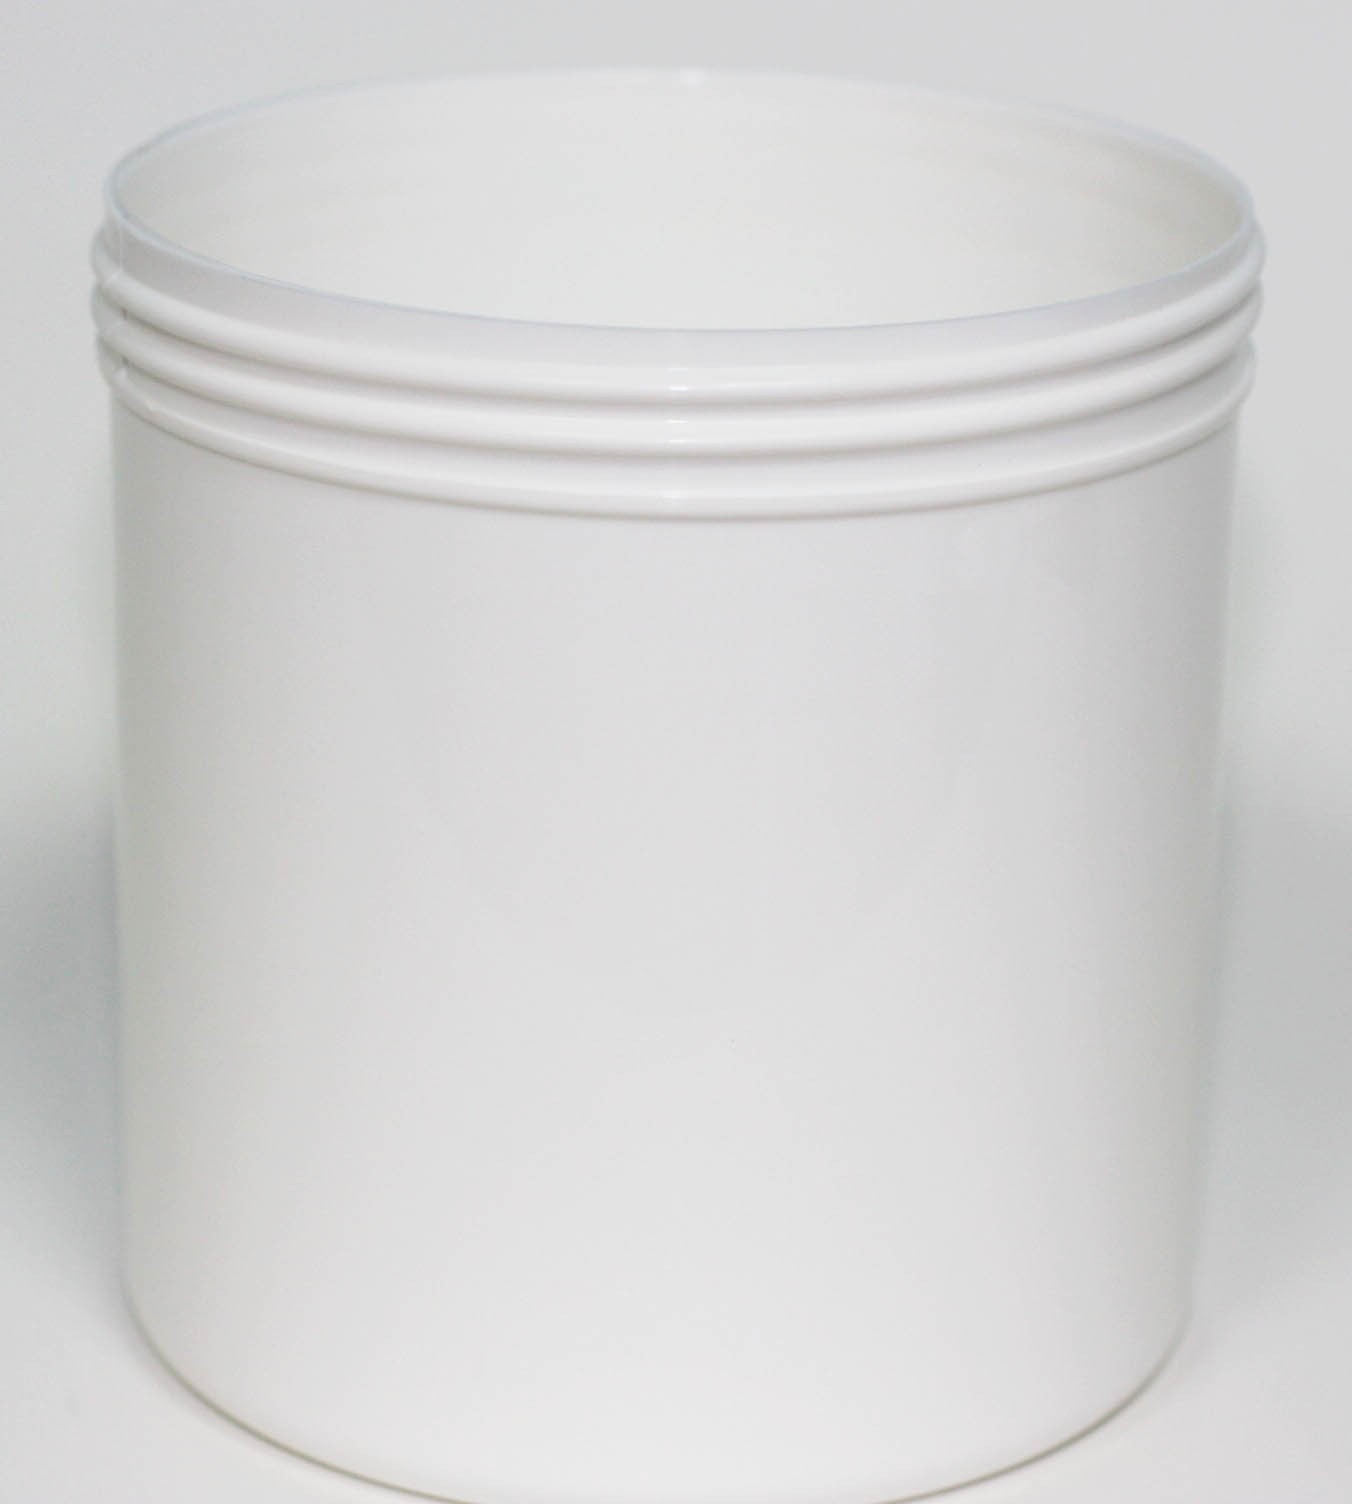 650ml WHITE PP JAR 100mm